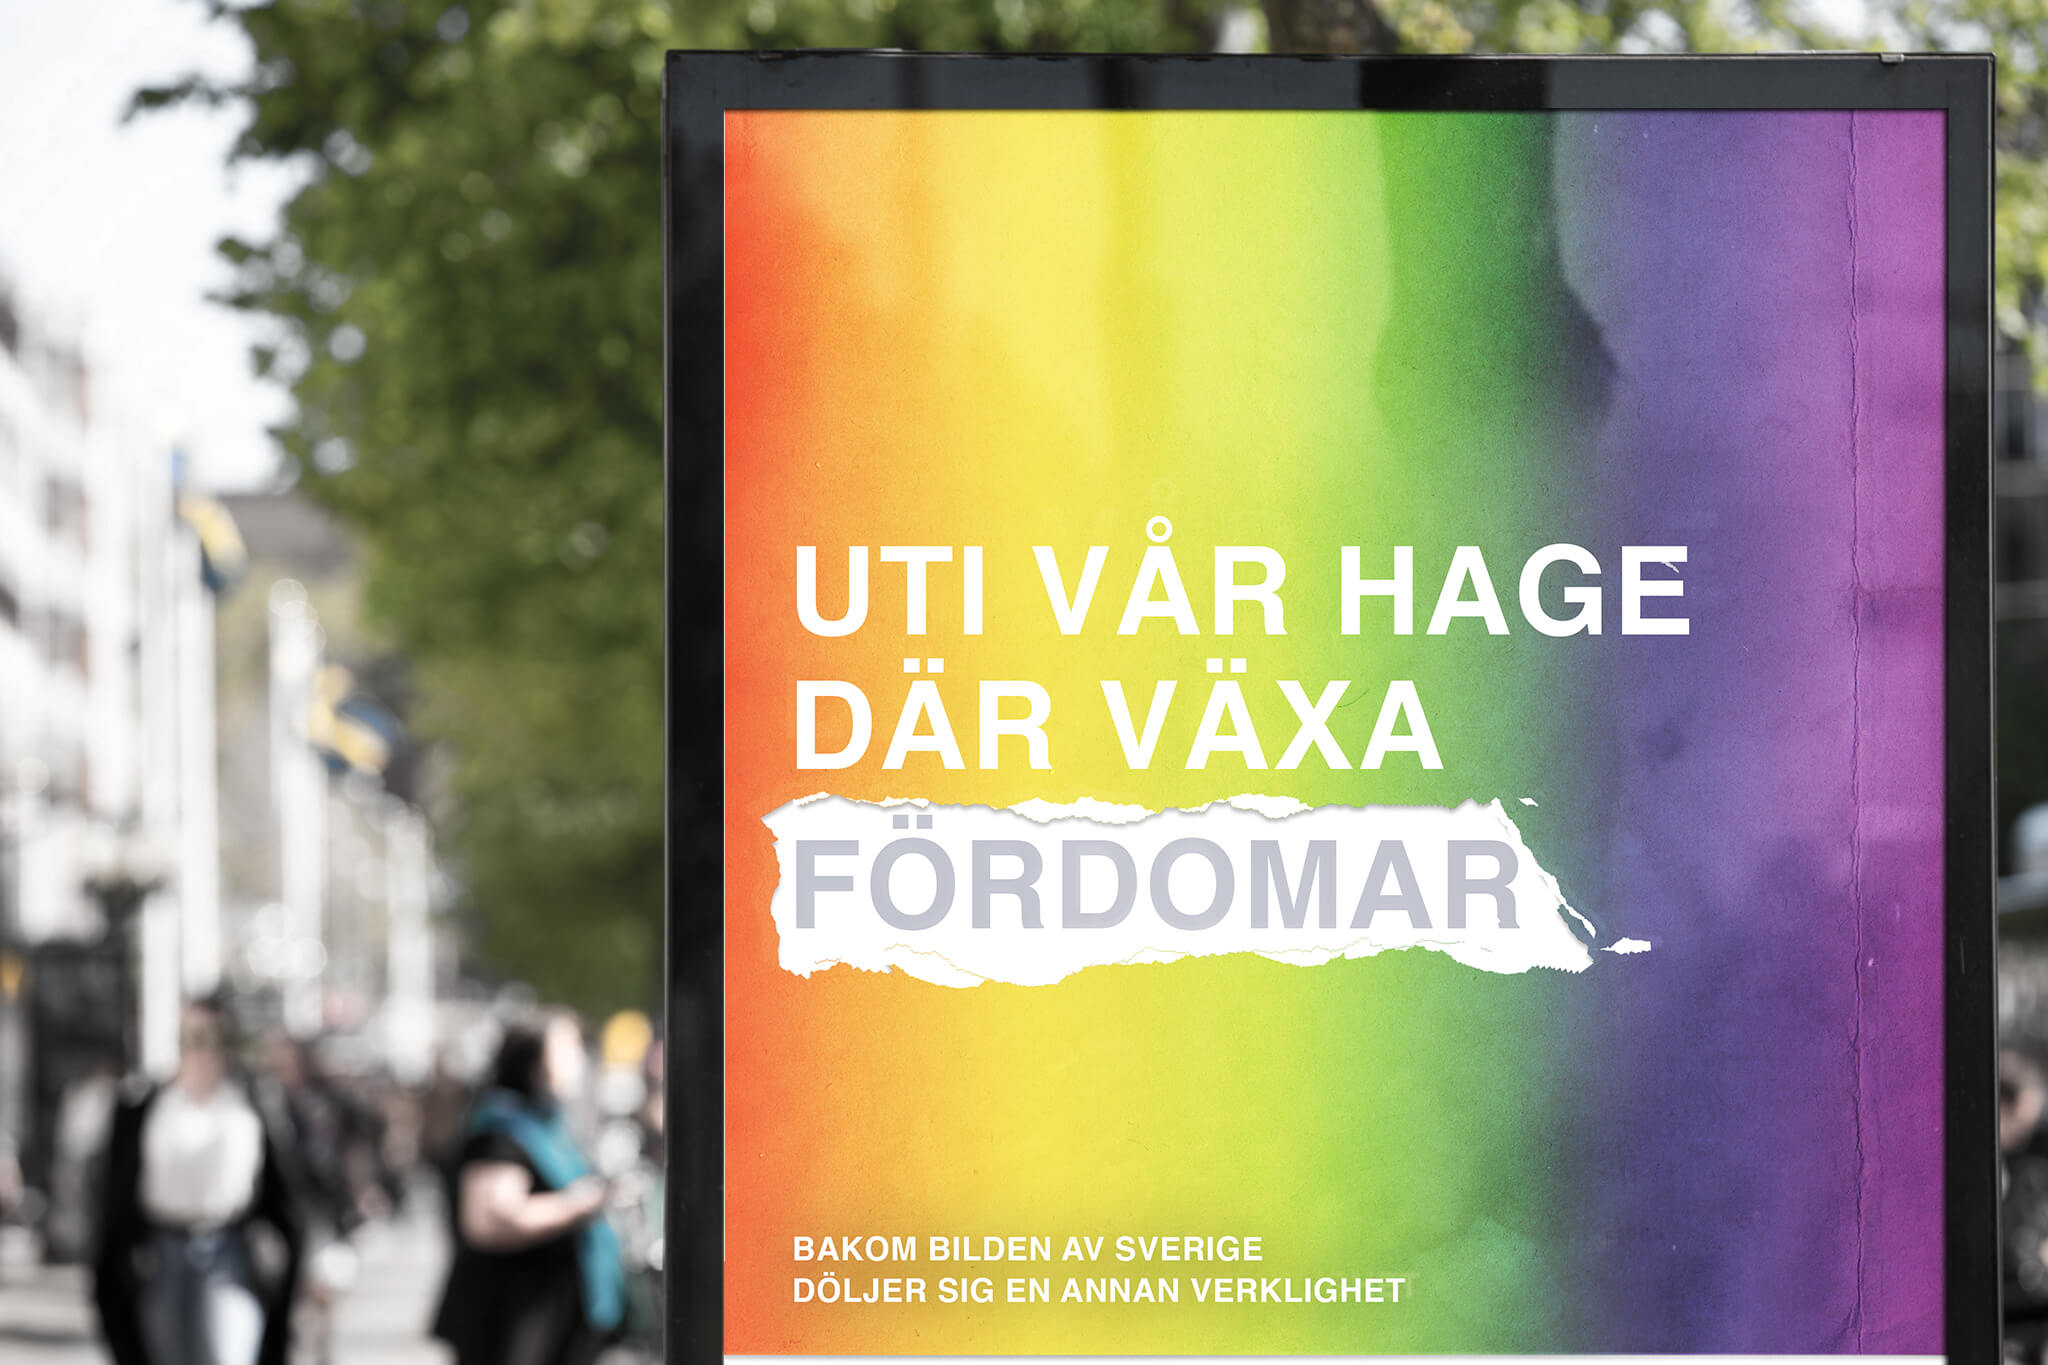 This year, Pride week falls at the same time as the Swedish National Day